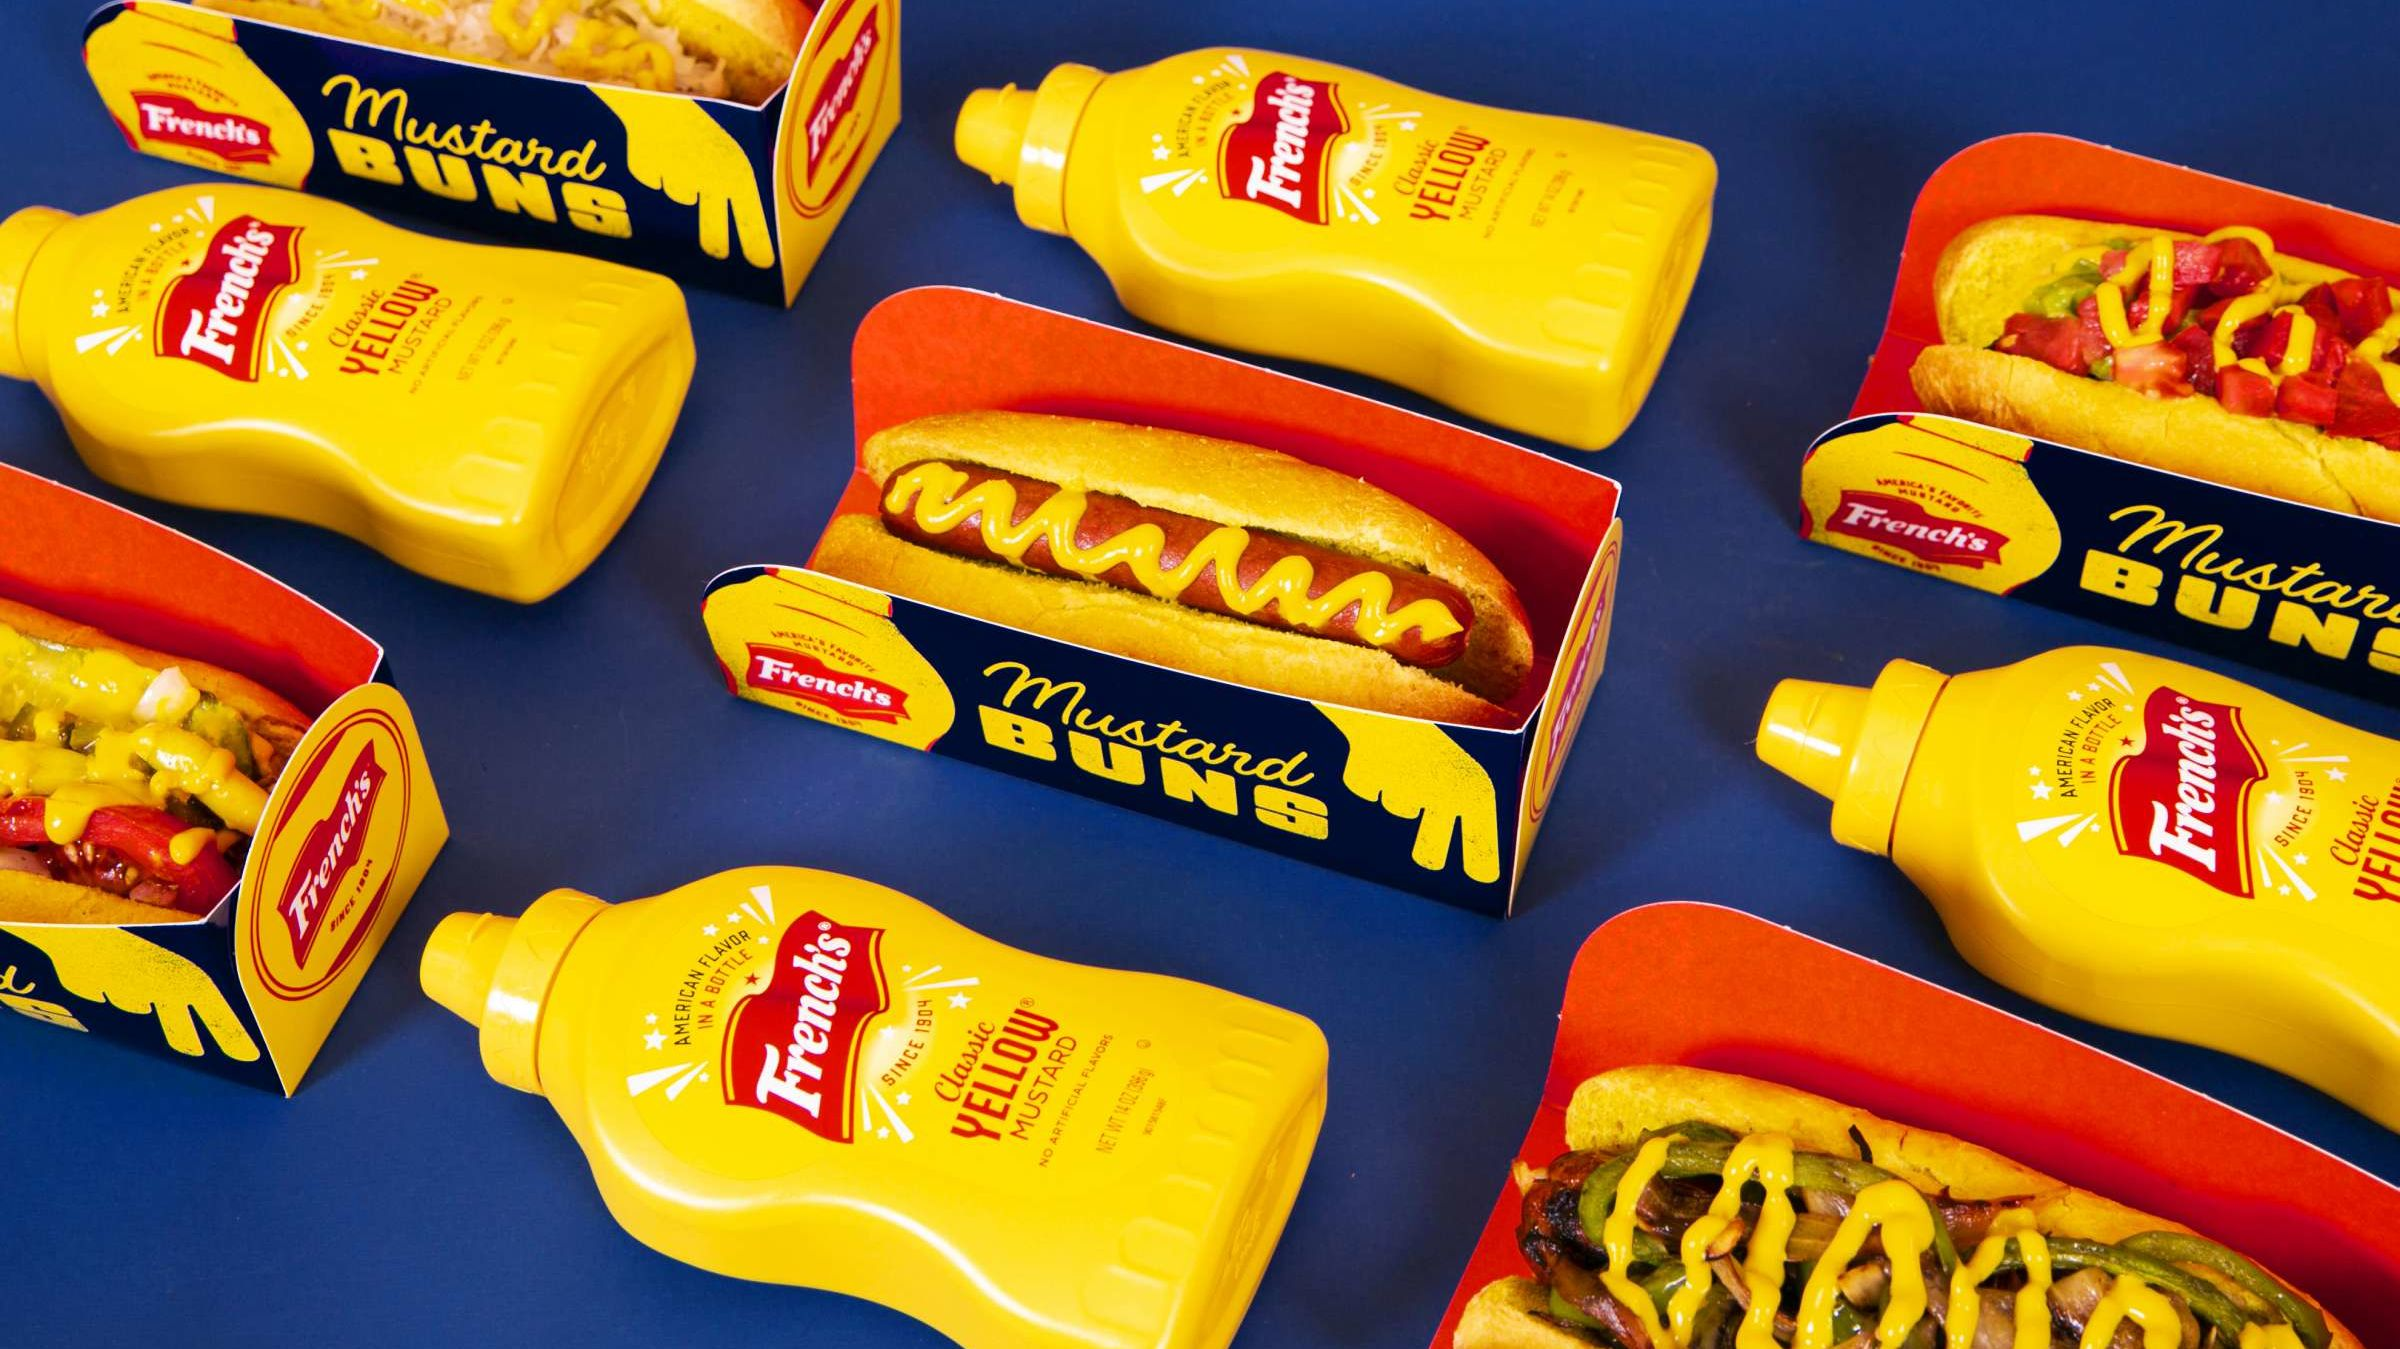 Celebrate National Mustard Day With French's Mustard-Flavored Hot Dog Buns